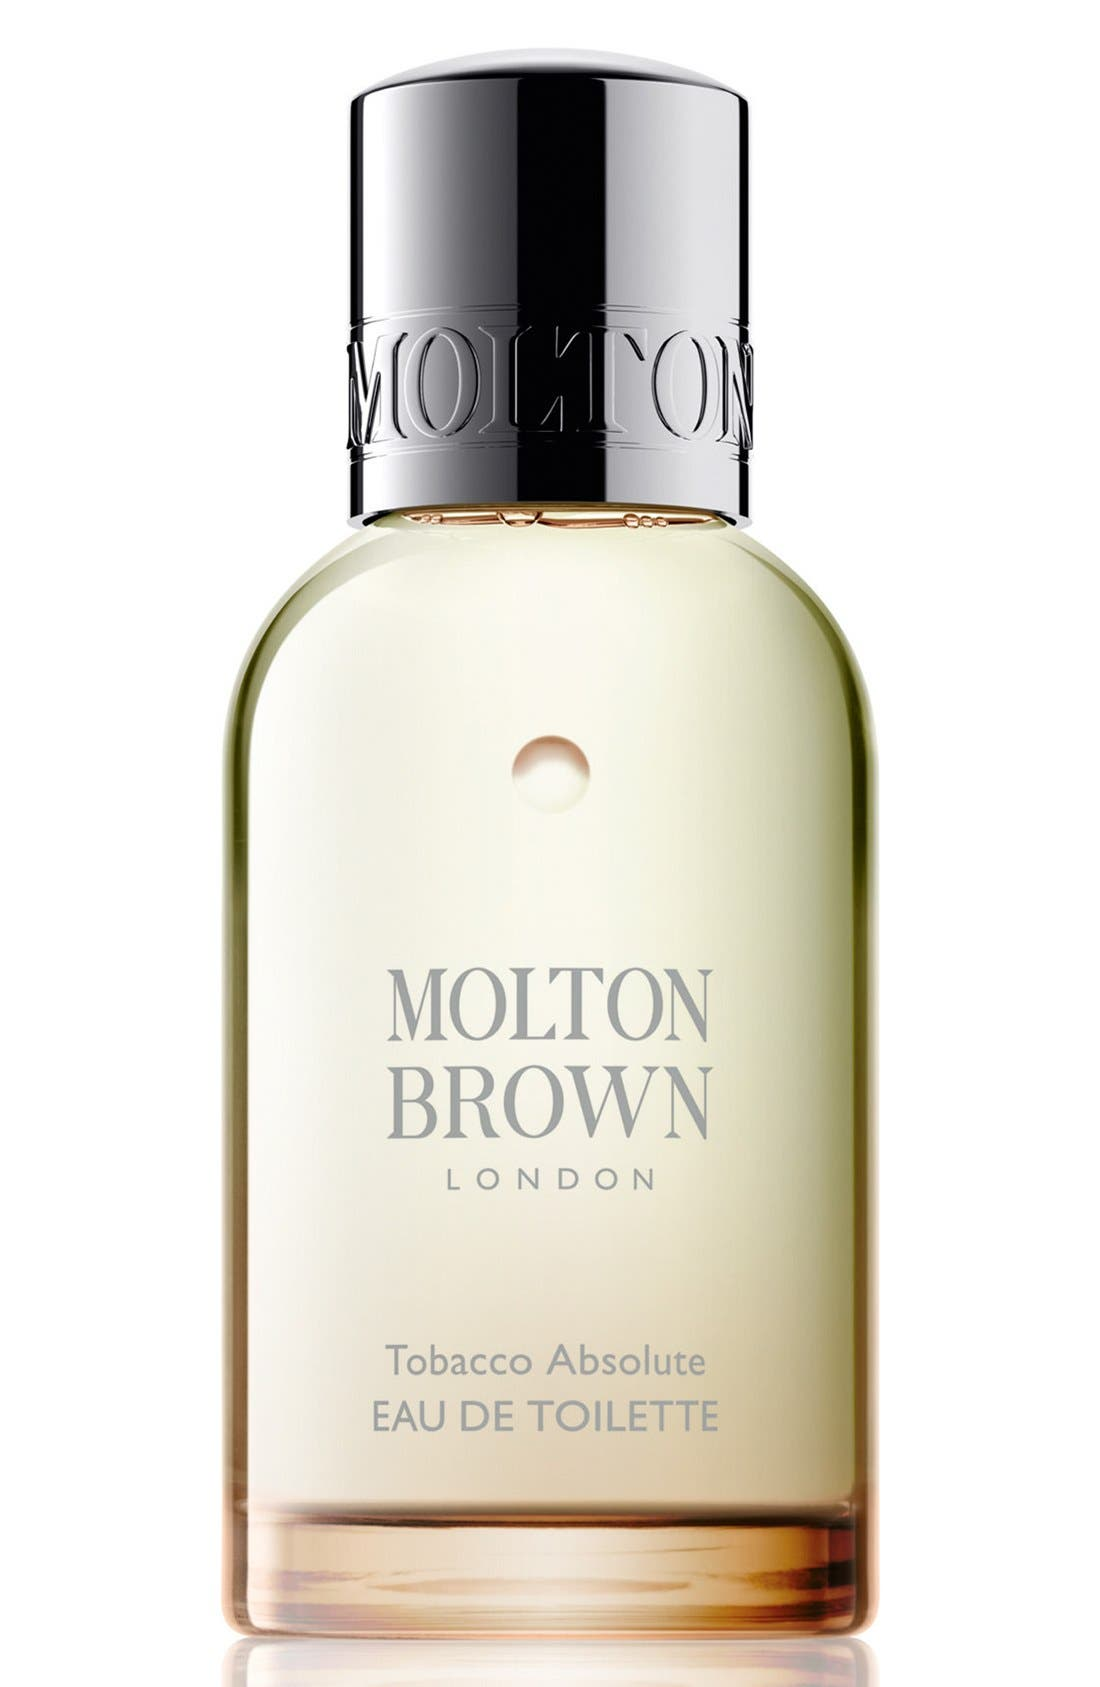 MOLTON BROWN London Tobacco Absolute Eau de Toilette